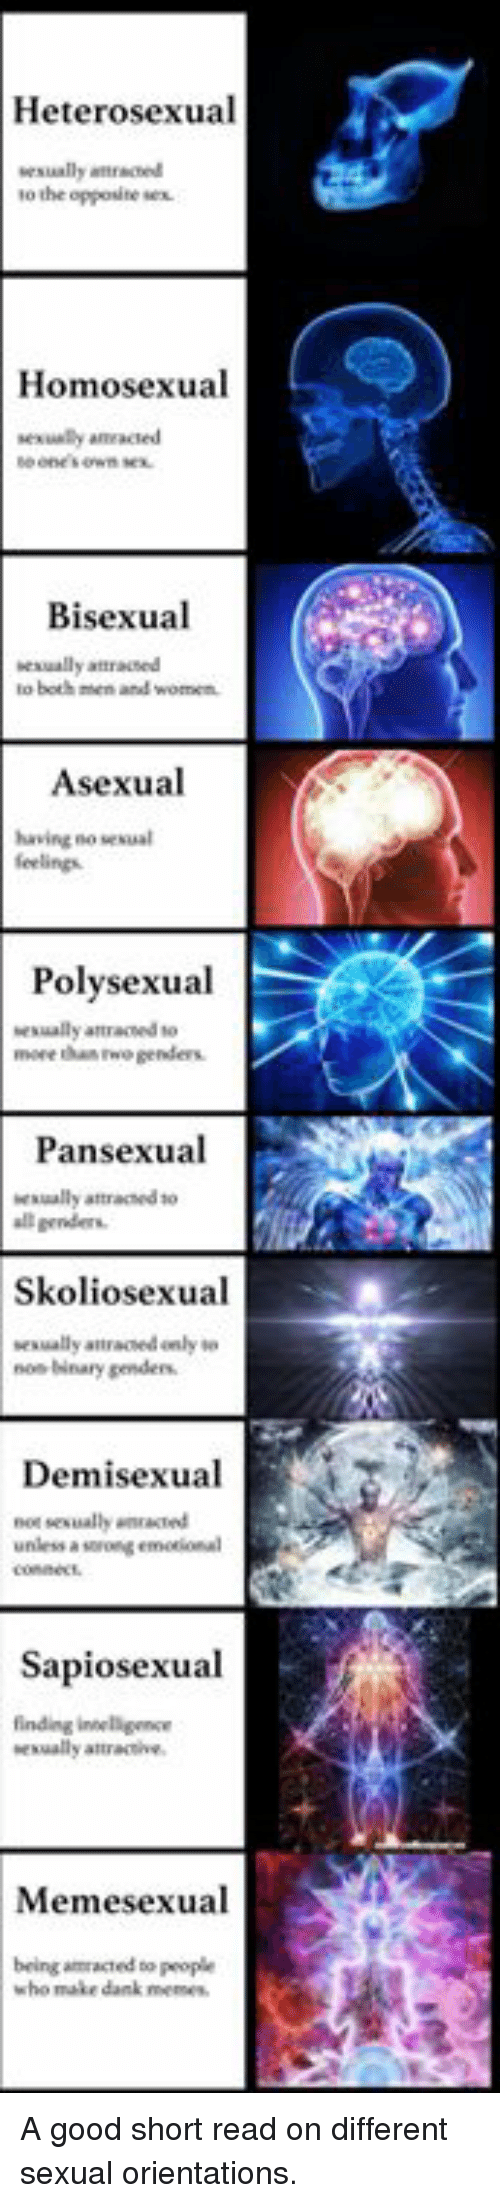 bisexual pansexual polysexual asexual and demisexual